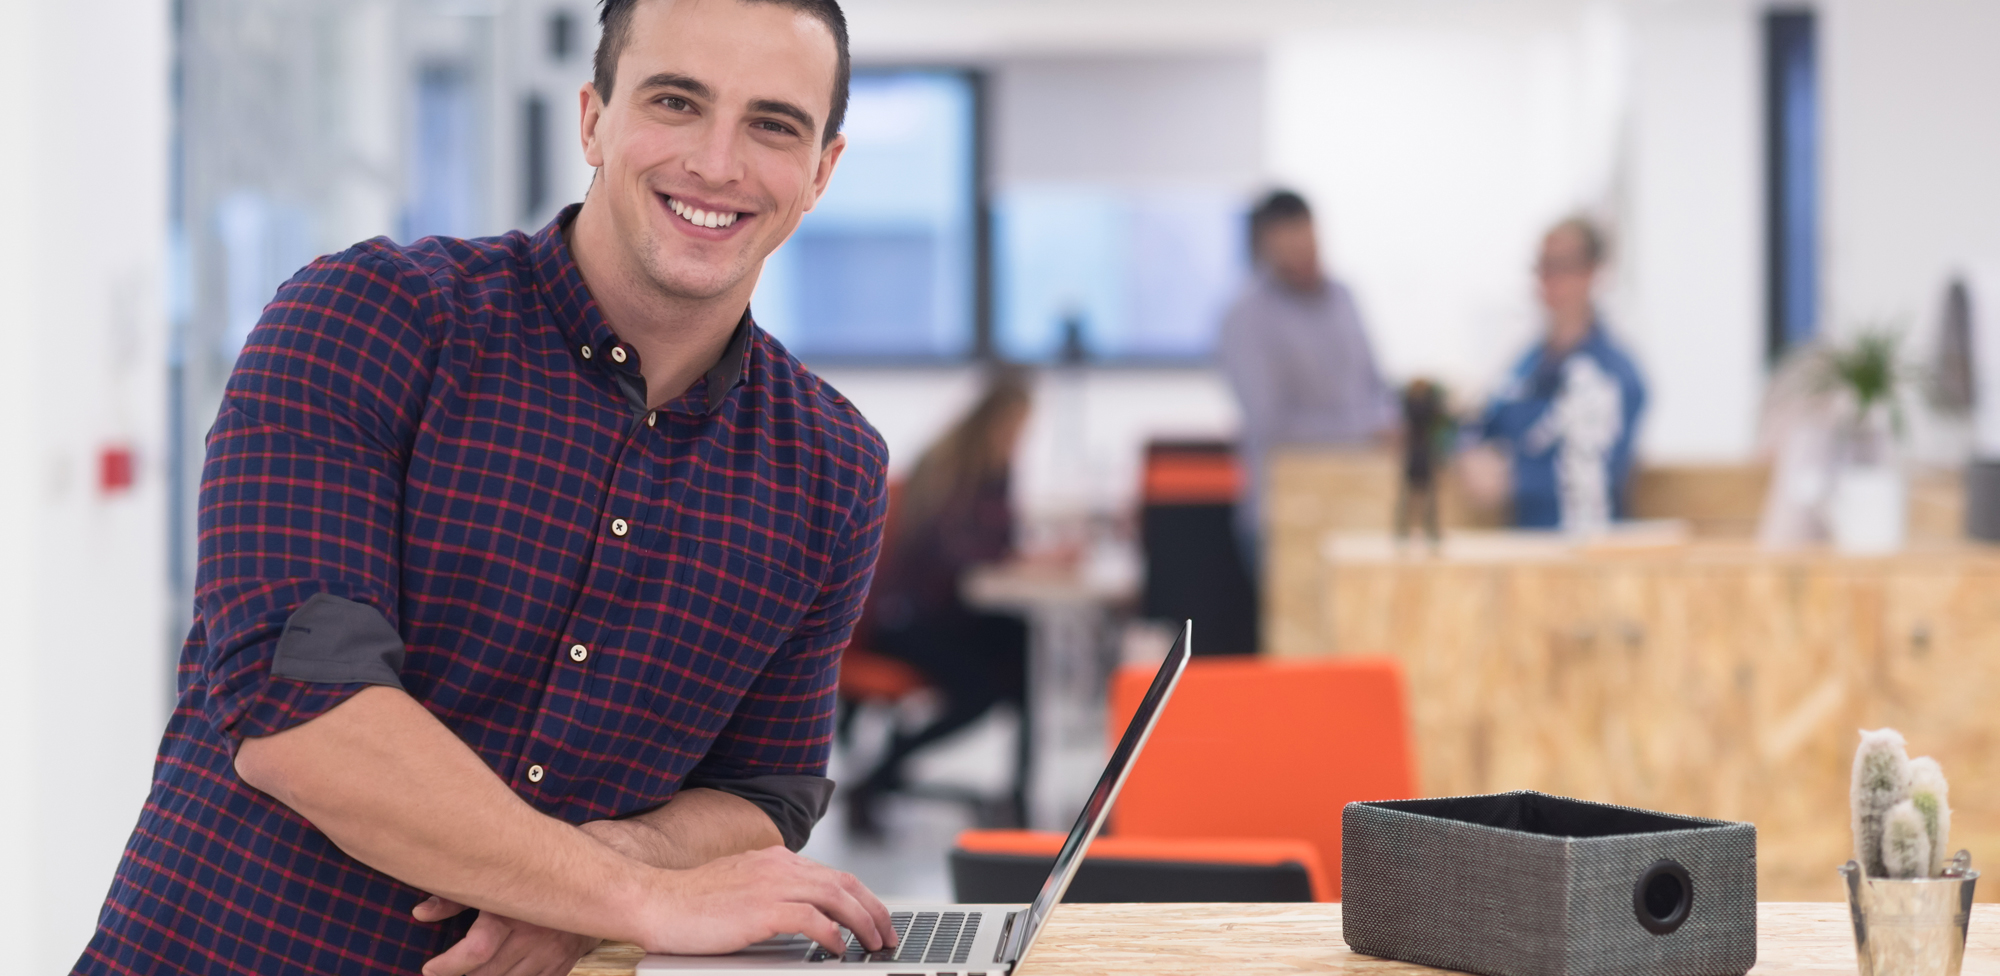 young man leaning on the table where his open laptop is and smiling at the camera